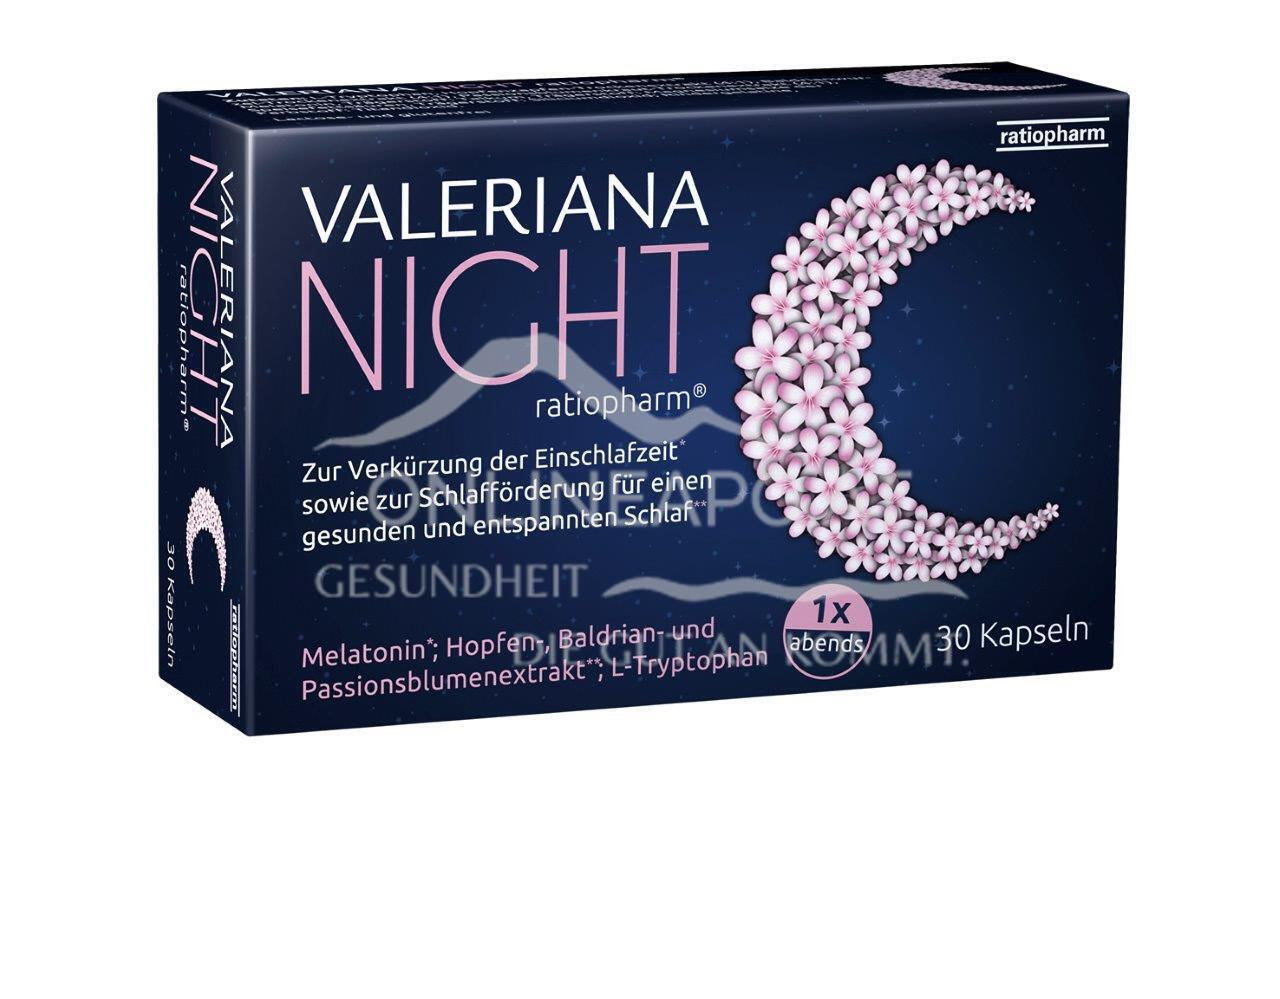 Valeriana NIGHT ratiopharm®